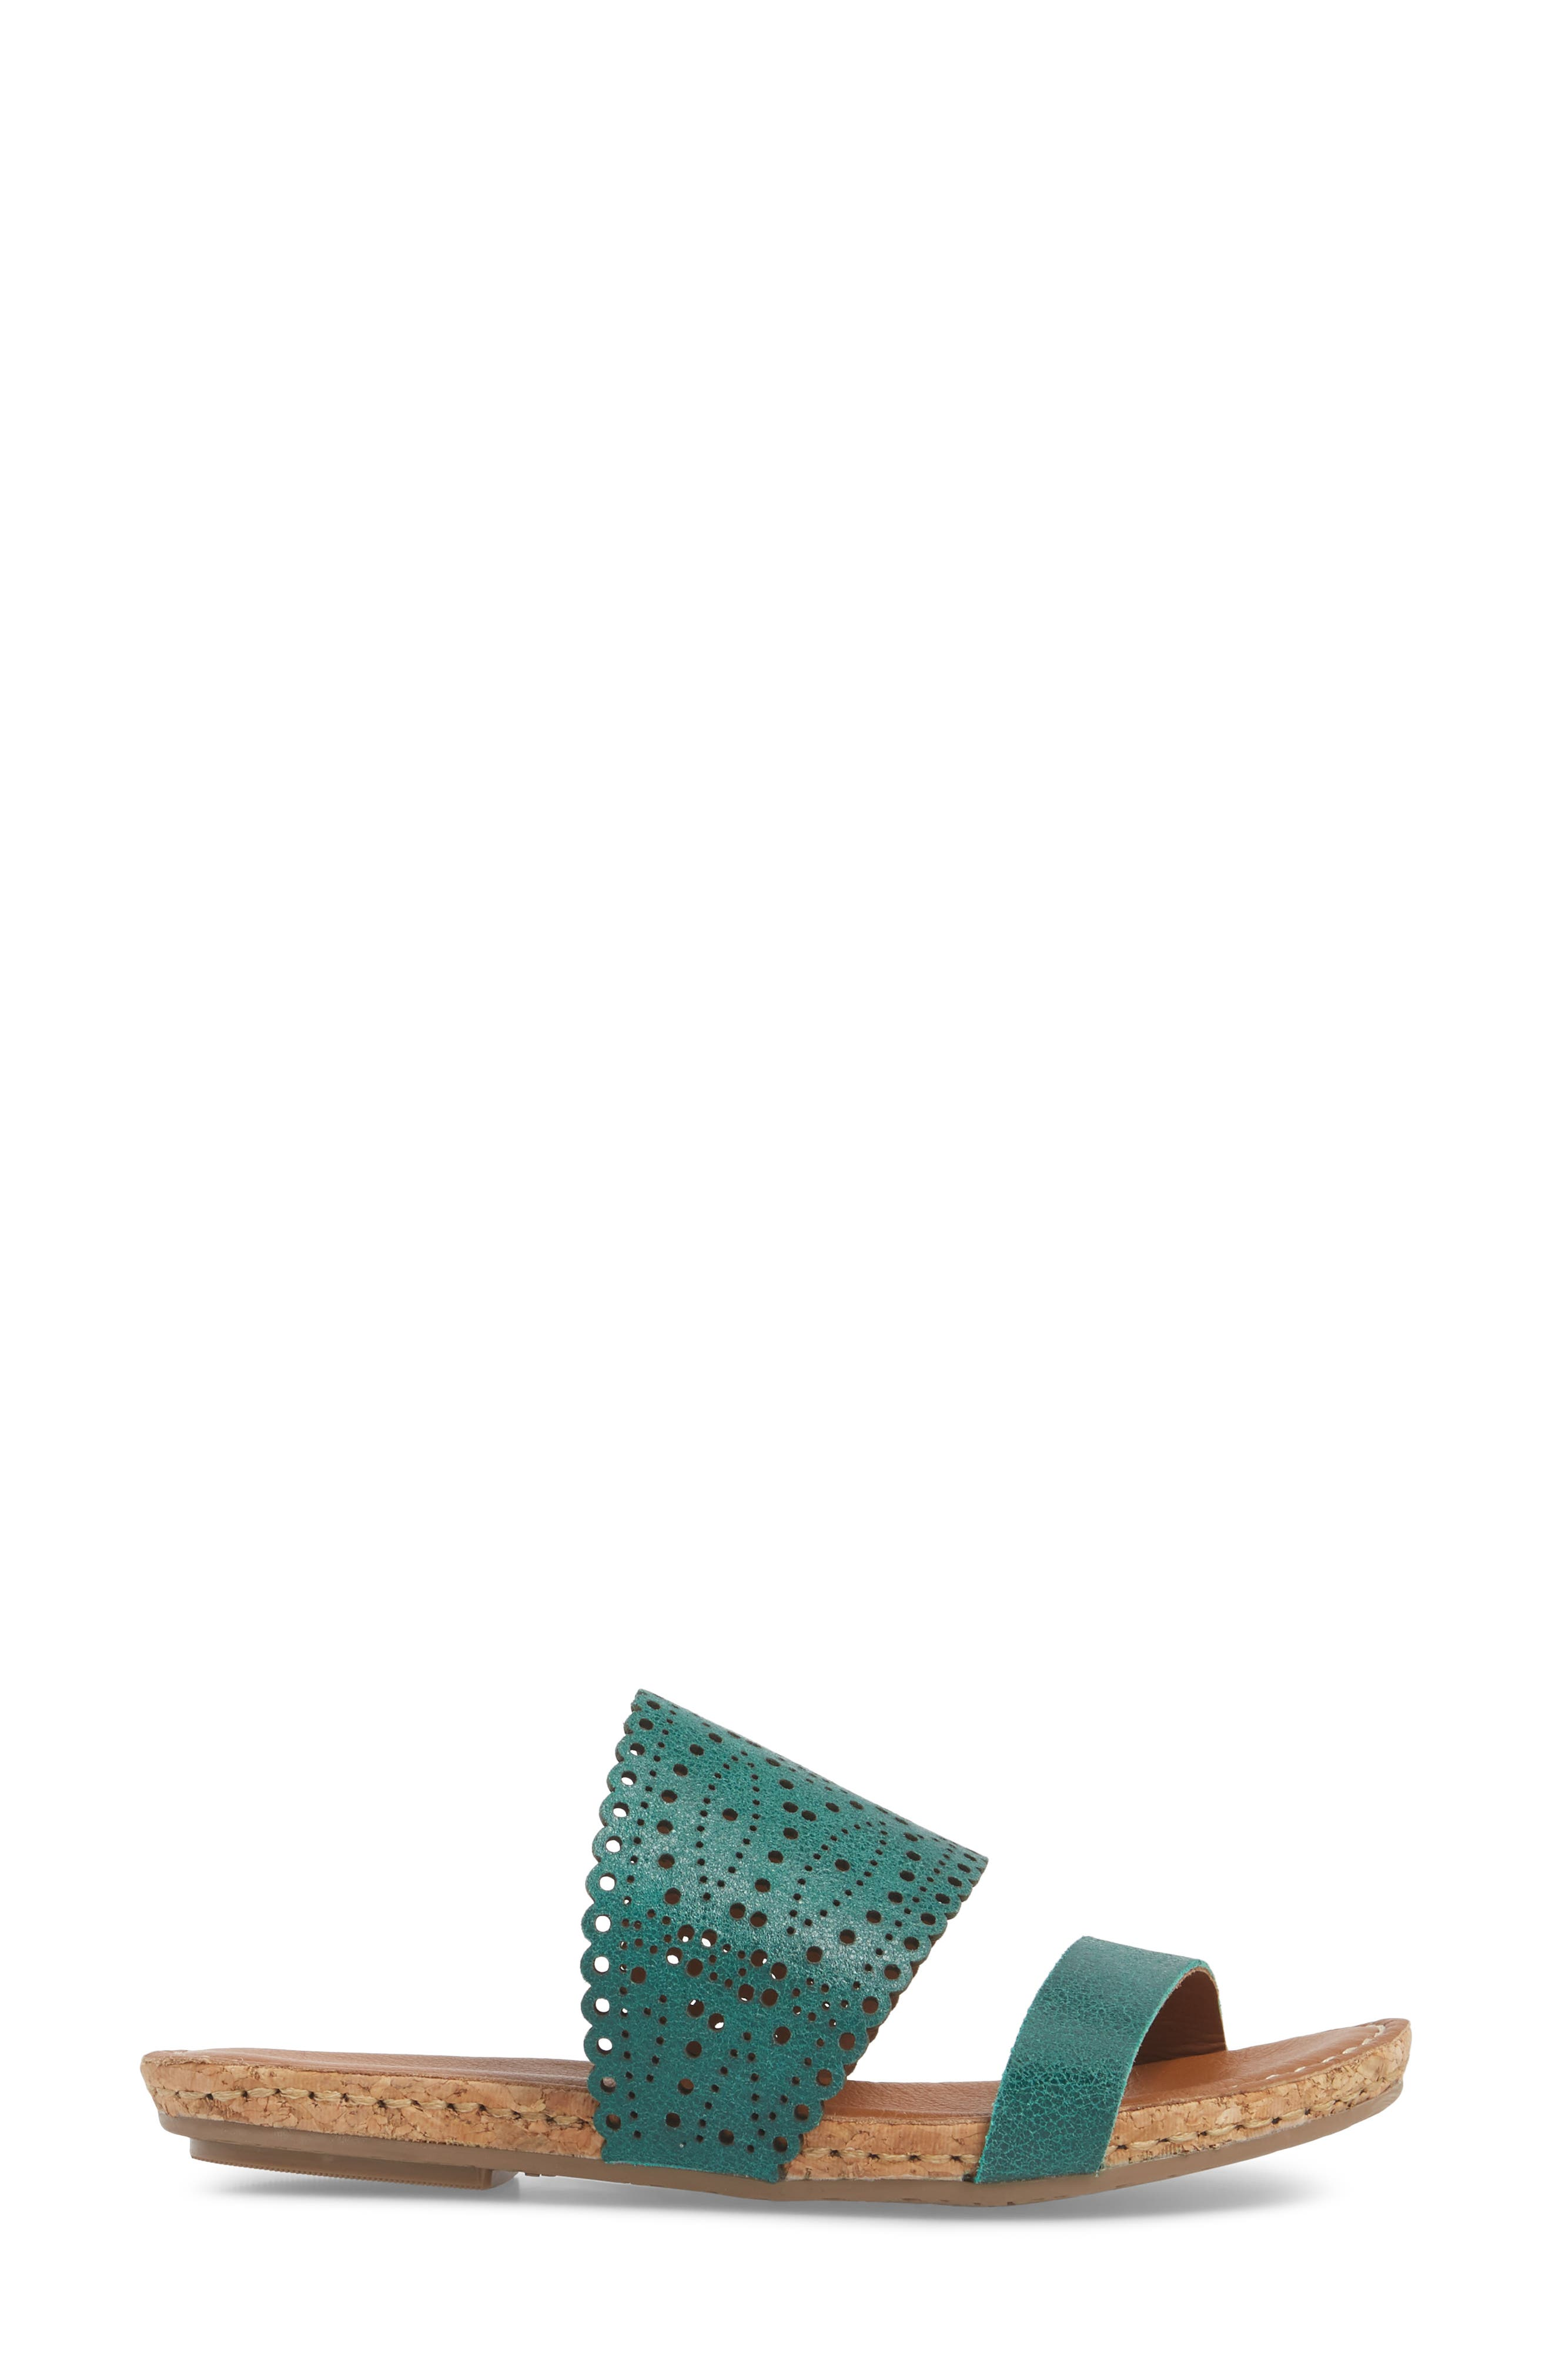 Ginette Perforated Slide Sandal,                             Alternate thumbnail 3, color,                             Ivy Leather